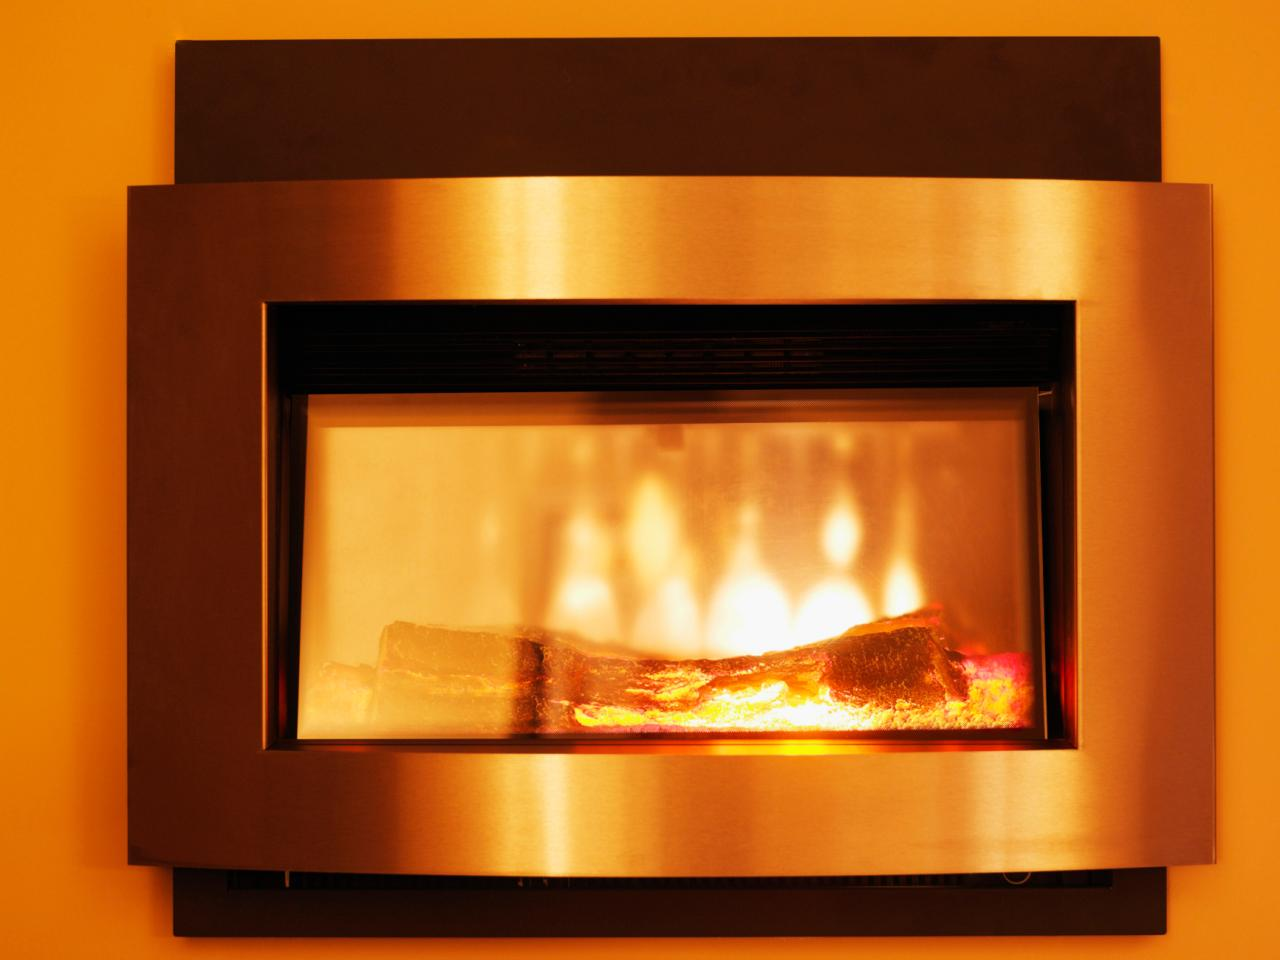 Wood Fireplace Heat Exchanger Gas Fireplaces Offer Efficient Heating Choices Hgtv